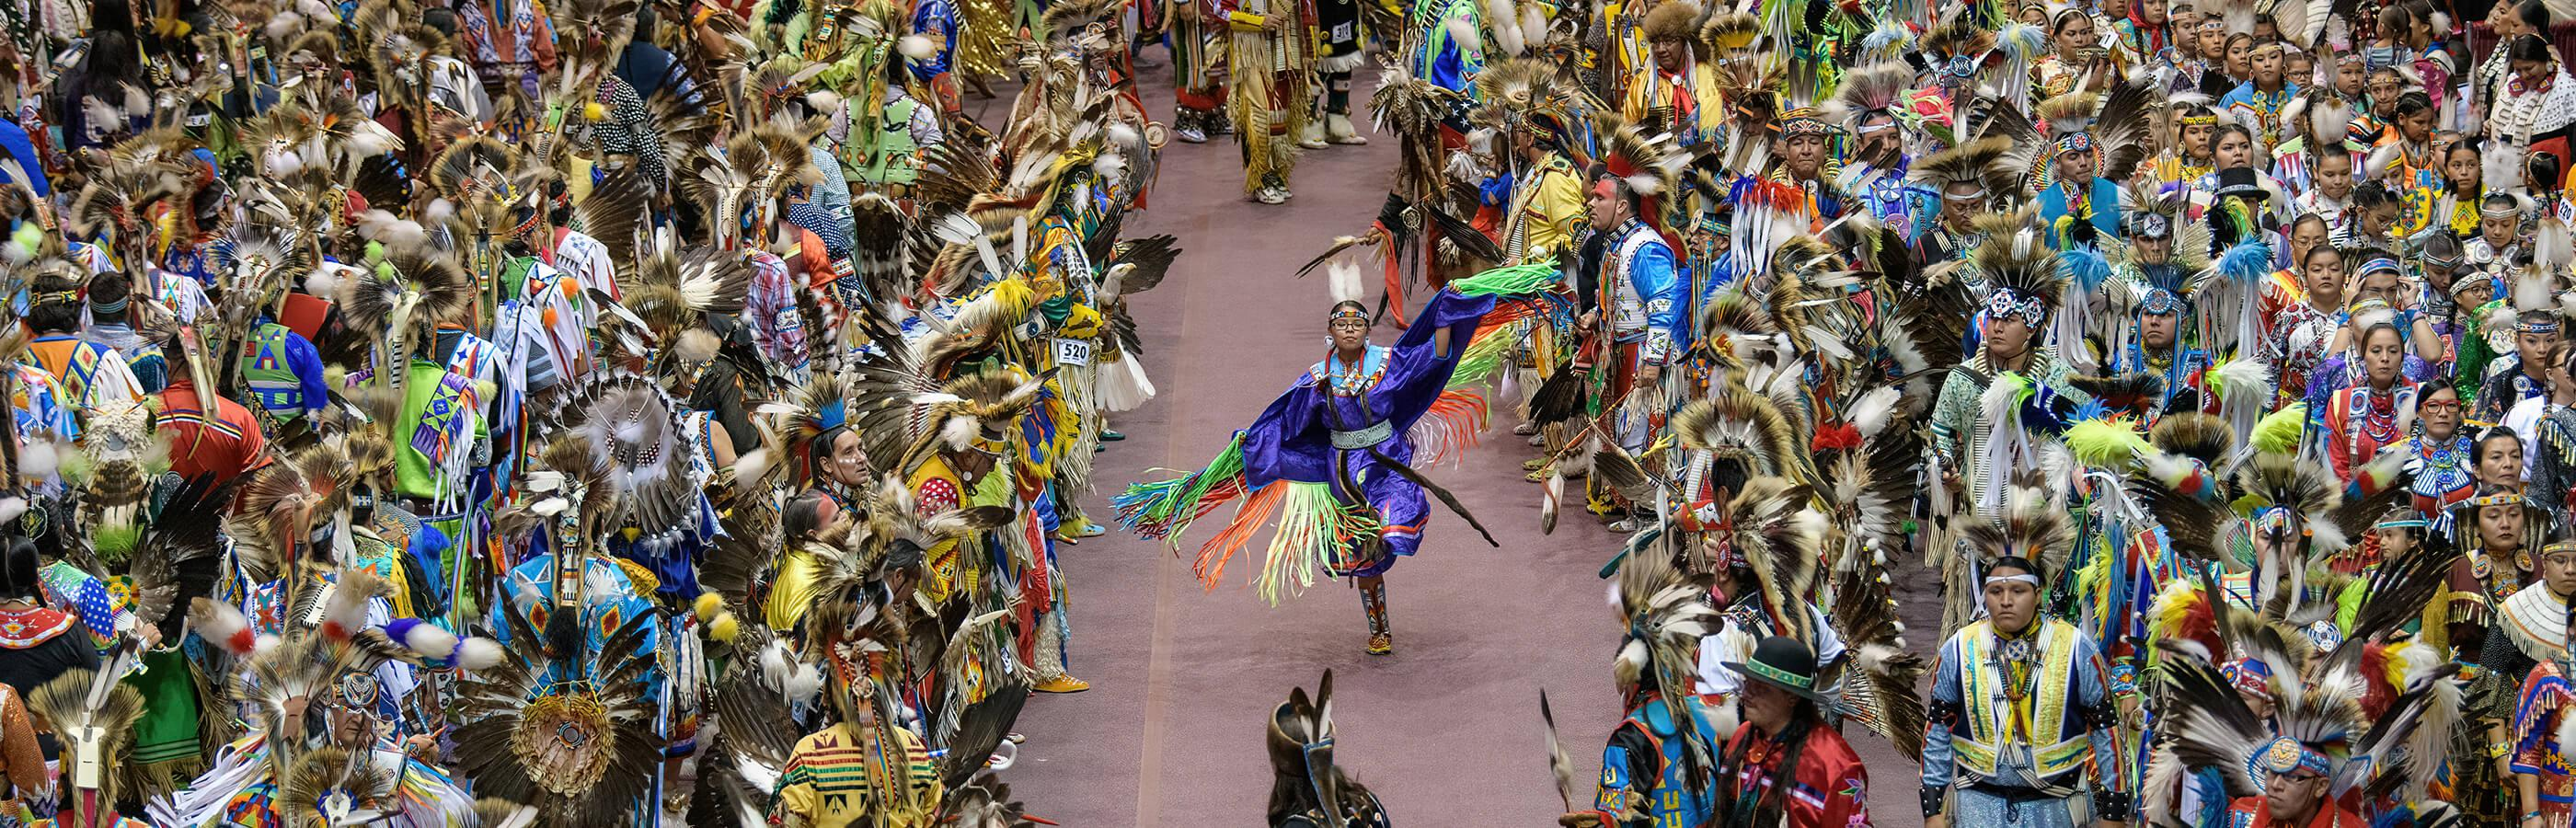 Dancers At The Black Hills Powwow